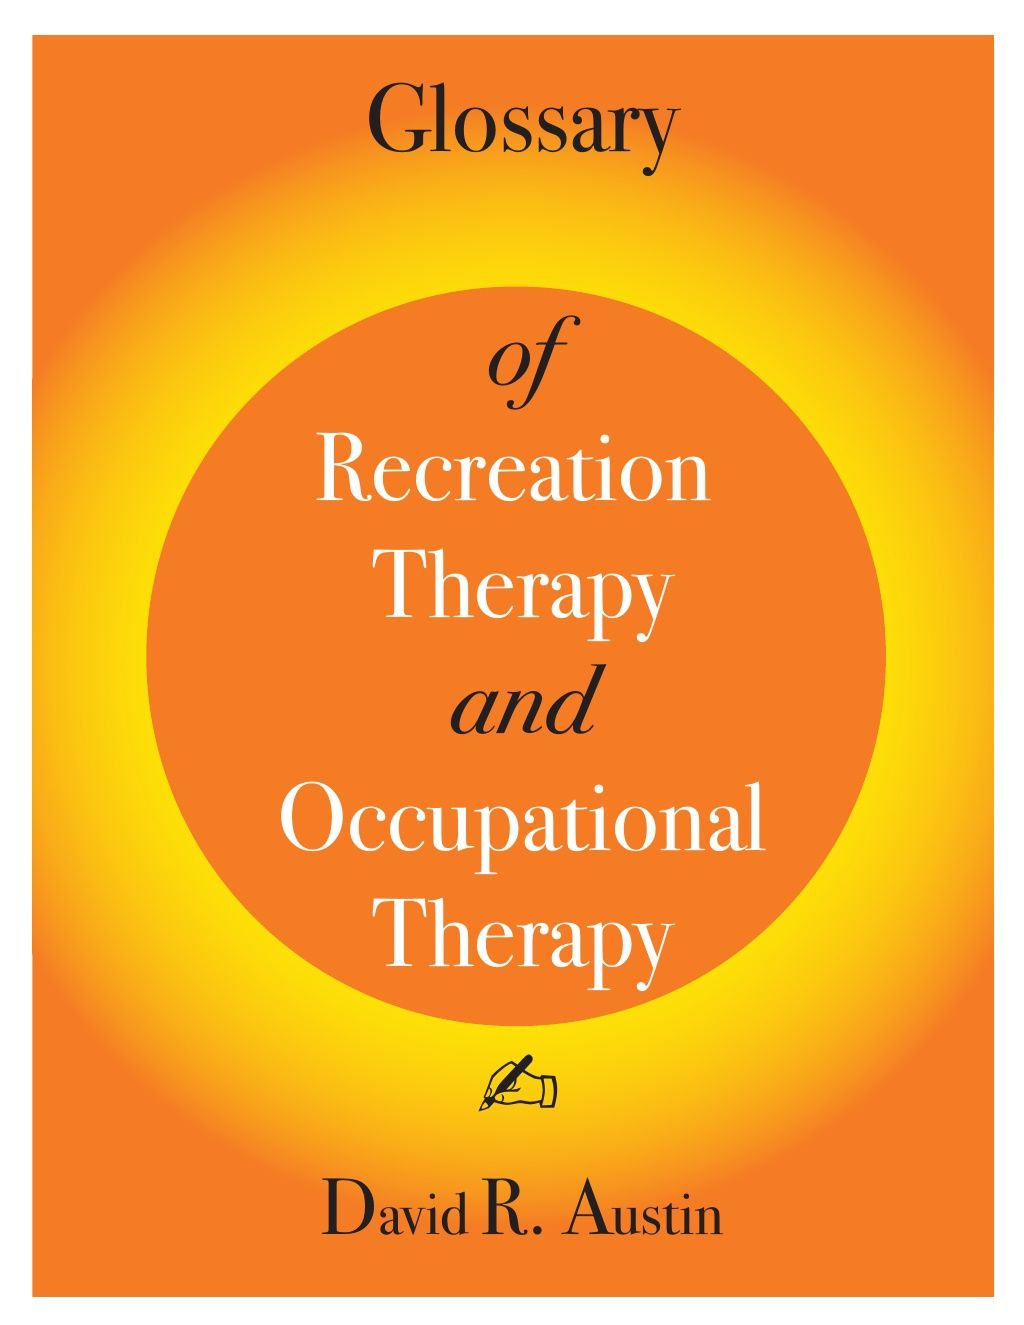 Glossary Of Recreation Therapy And Occupational Therapy By Elisamendelsohn Via Slideshare